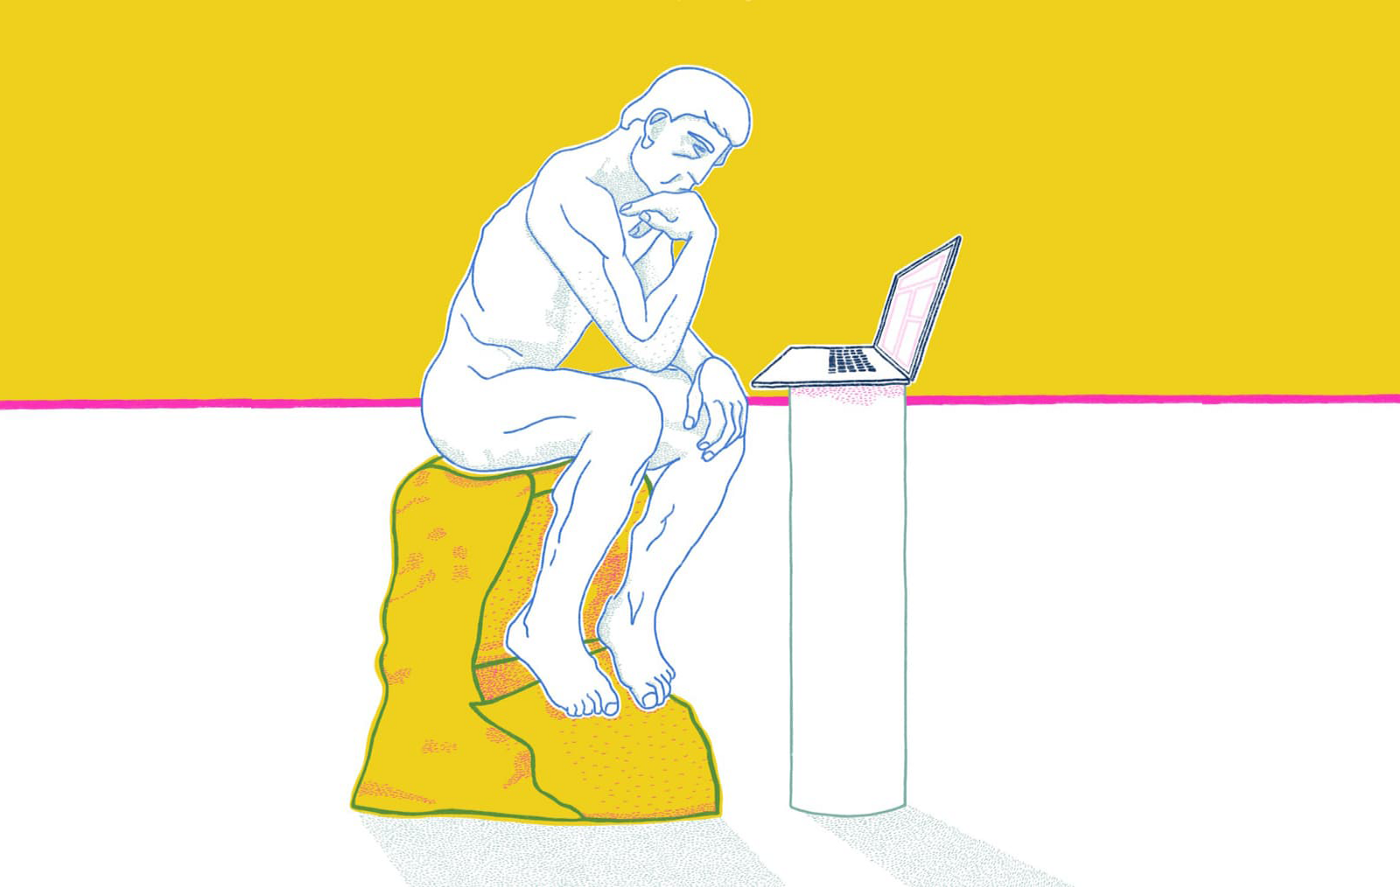 An illustration of Rodin's, The Thinker, with a laptop placed in front of the man.